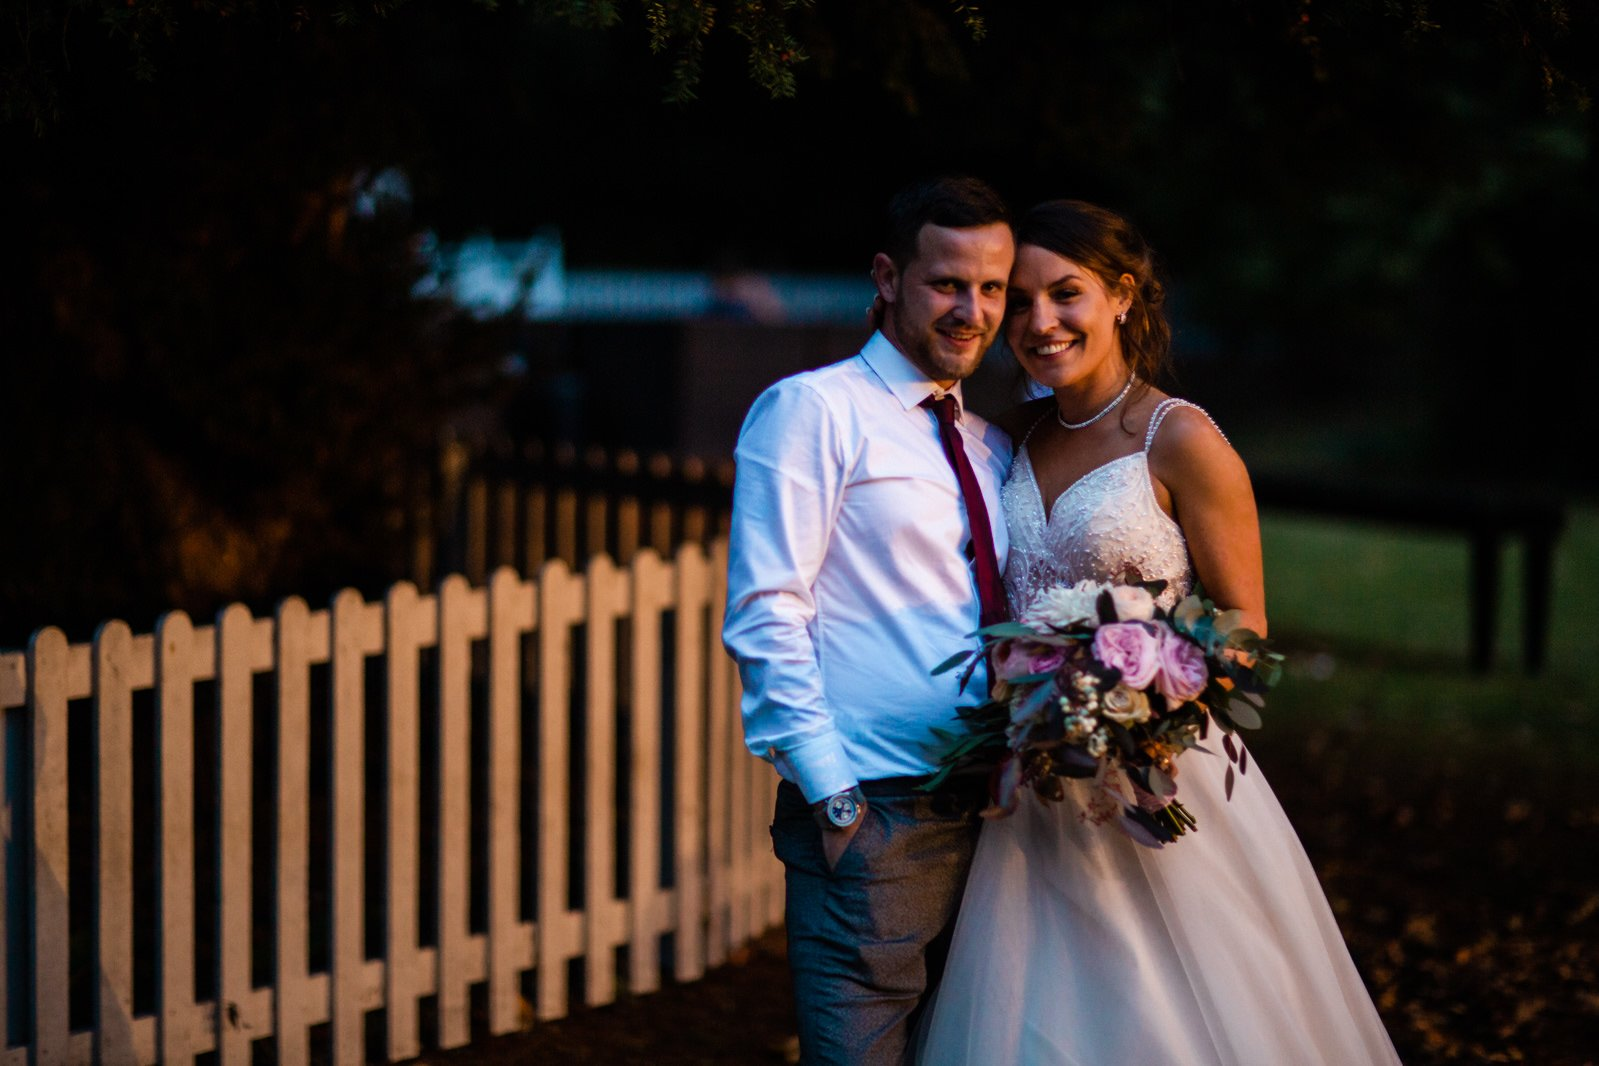 The Elephant Pangbourne Wedding - Stunning Kayleigh & Shane 91